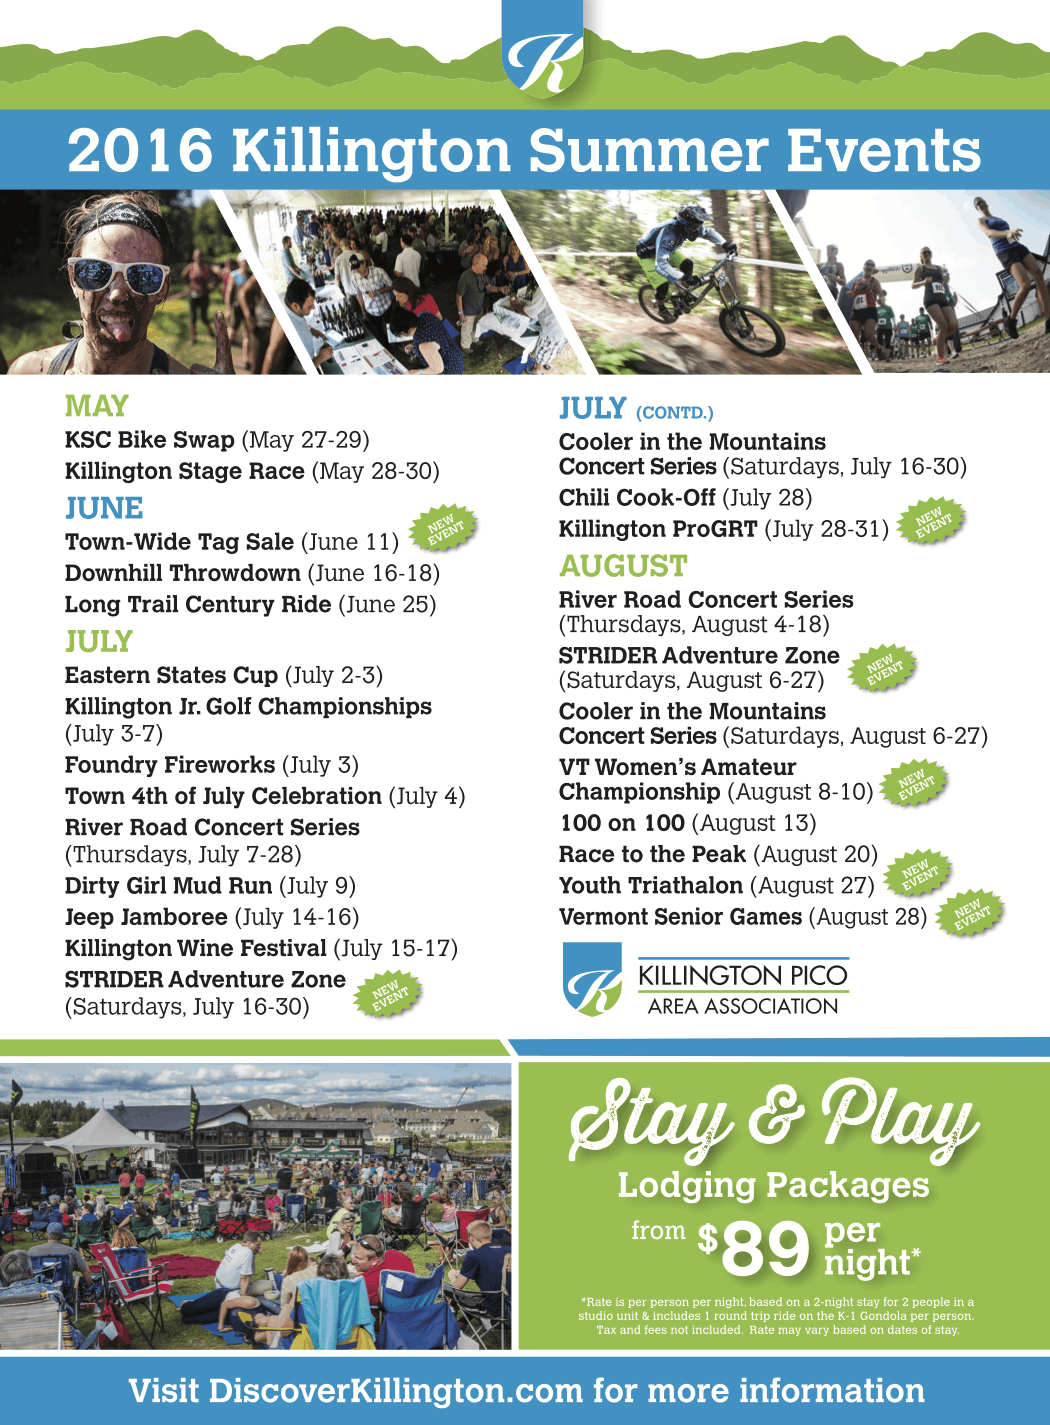 2016 Killington Summer Events Schedule